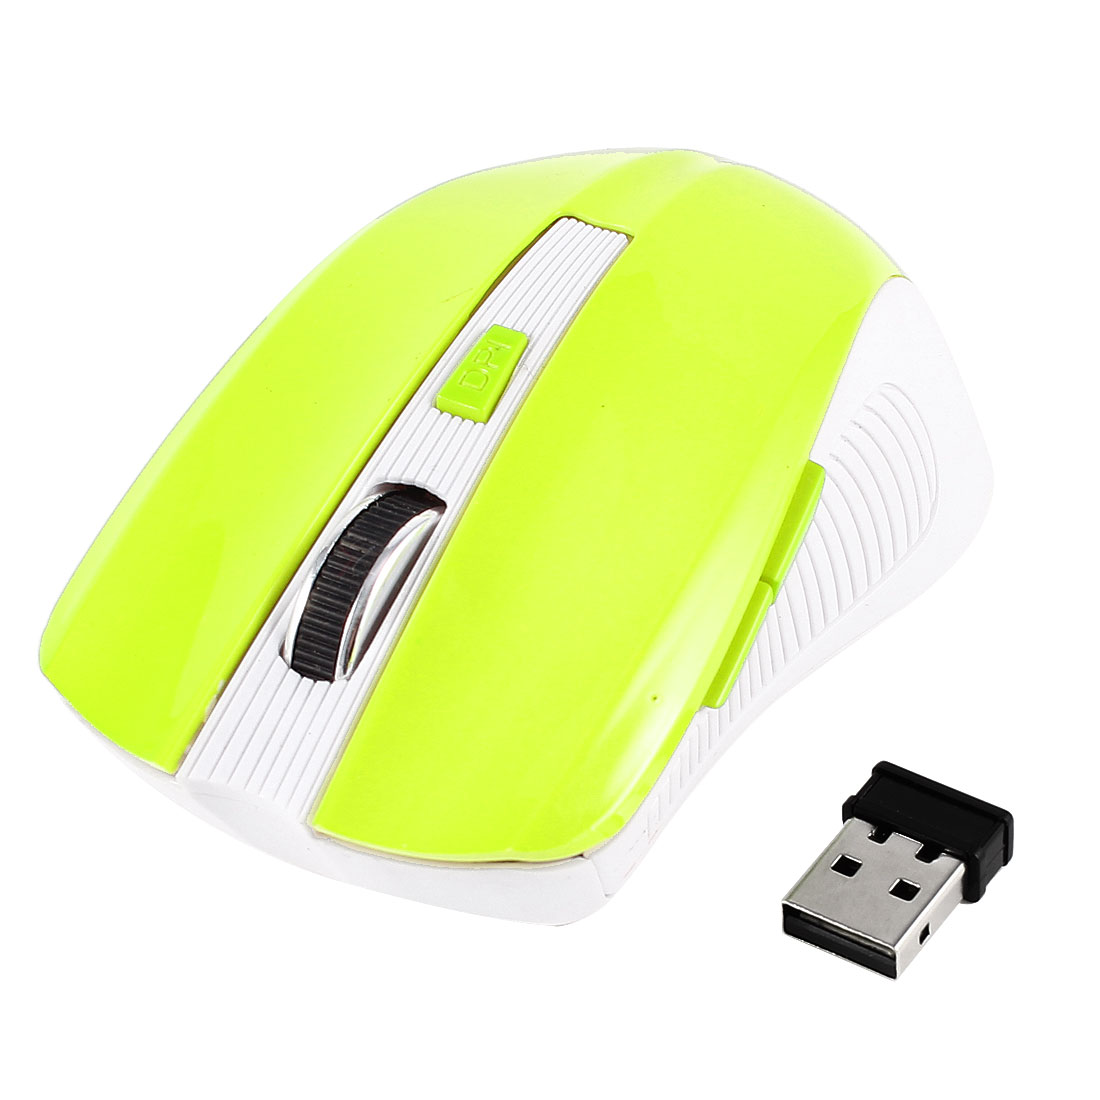 2.4GHz Scroll Wheel Optical Wireless Mouse Mice Green for Laptop PC Notebook